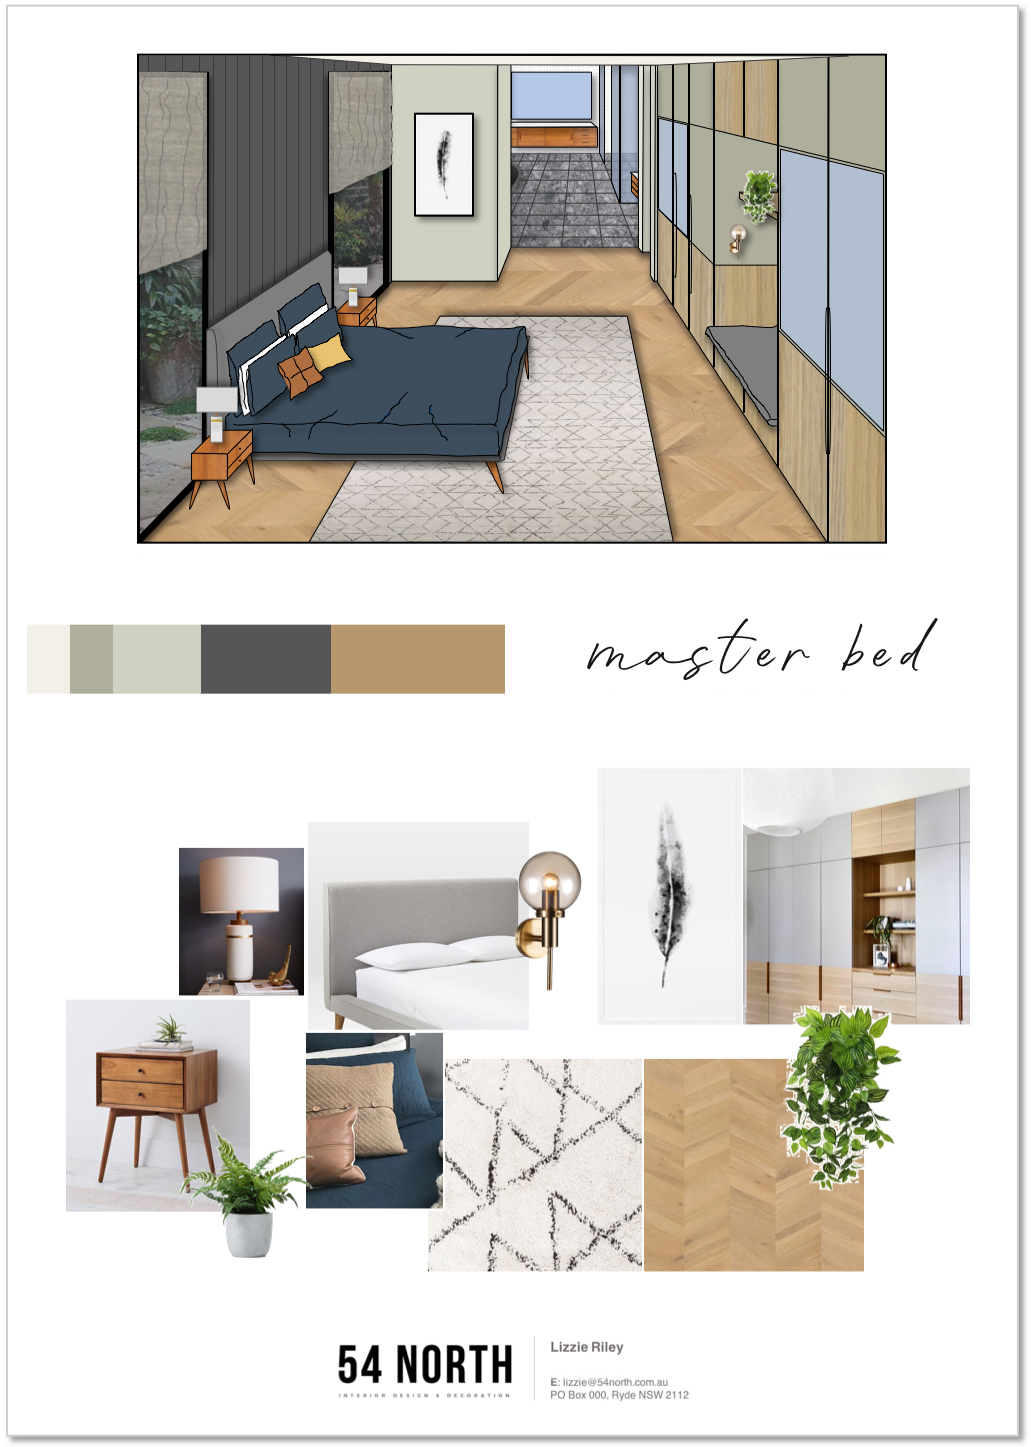 Bedroom Presentation copy (Edited).jpg